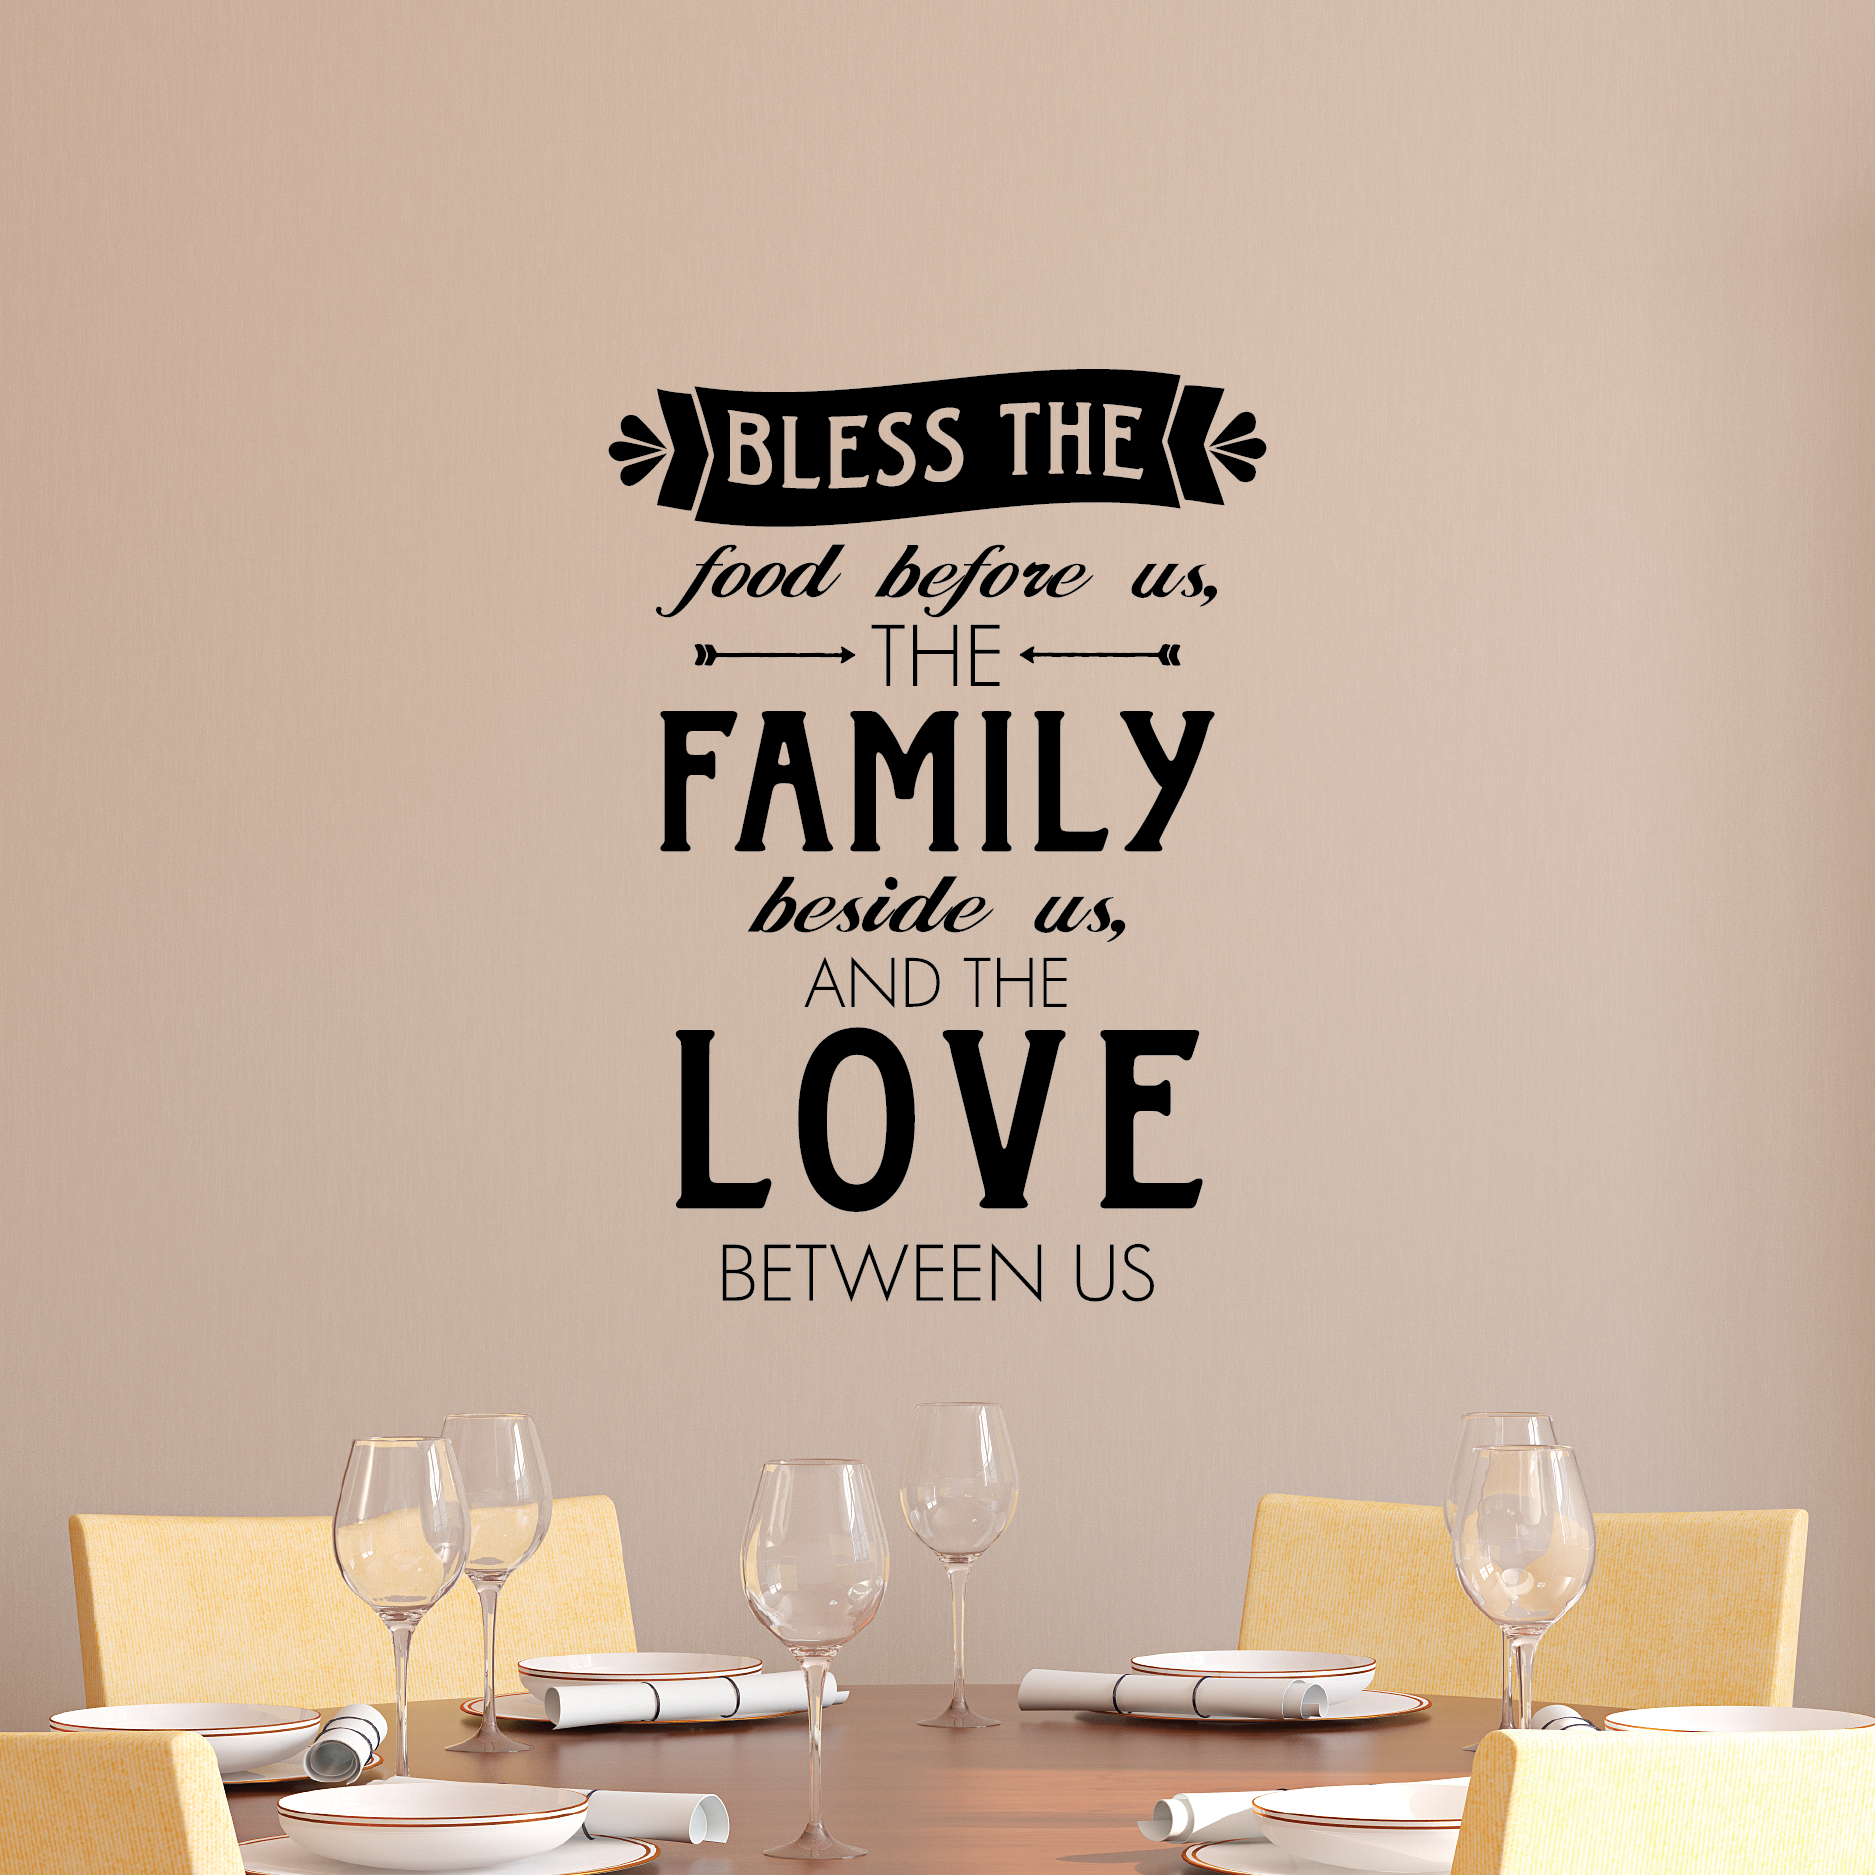 Love Wall Quotes Whimsy Bless Food Family Love Wall Quotes™ Decal  Wallquotes